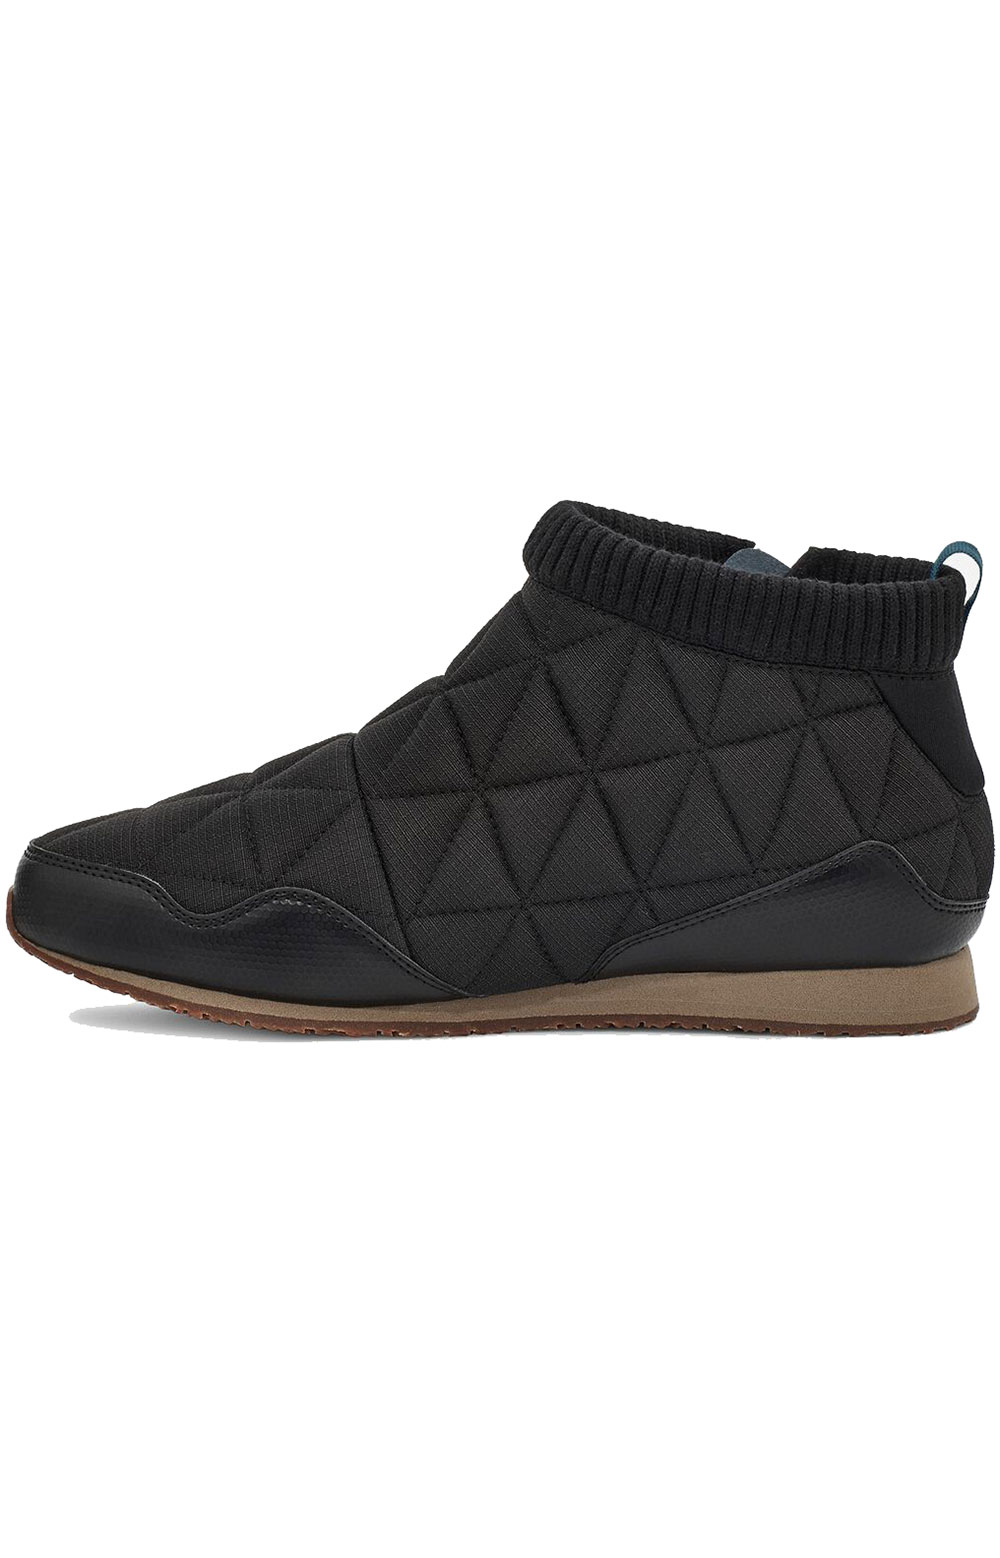 (1125310) ReEMBER MID Shoes - Black  3